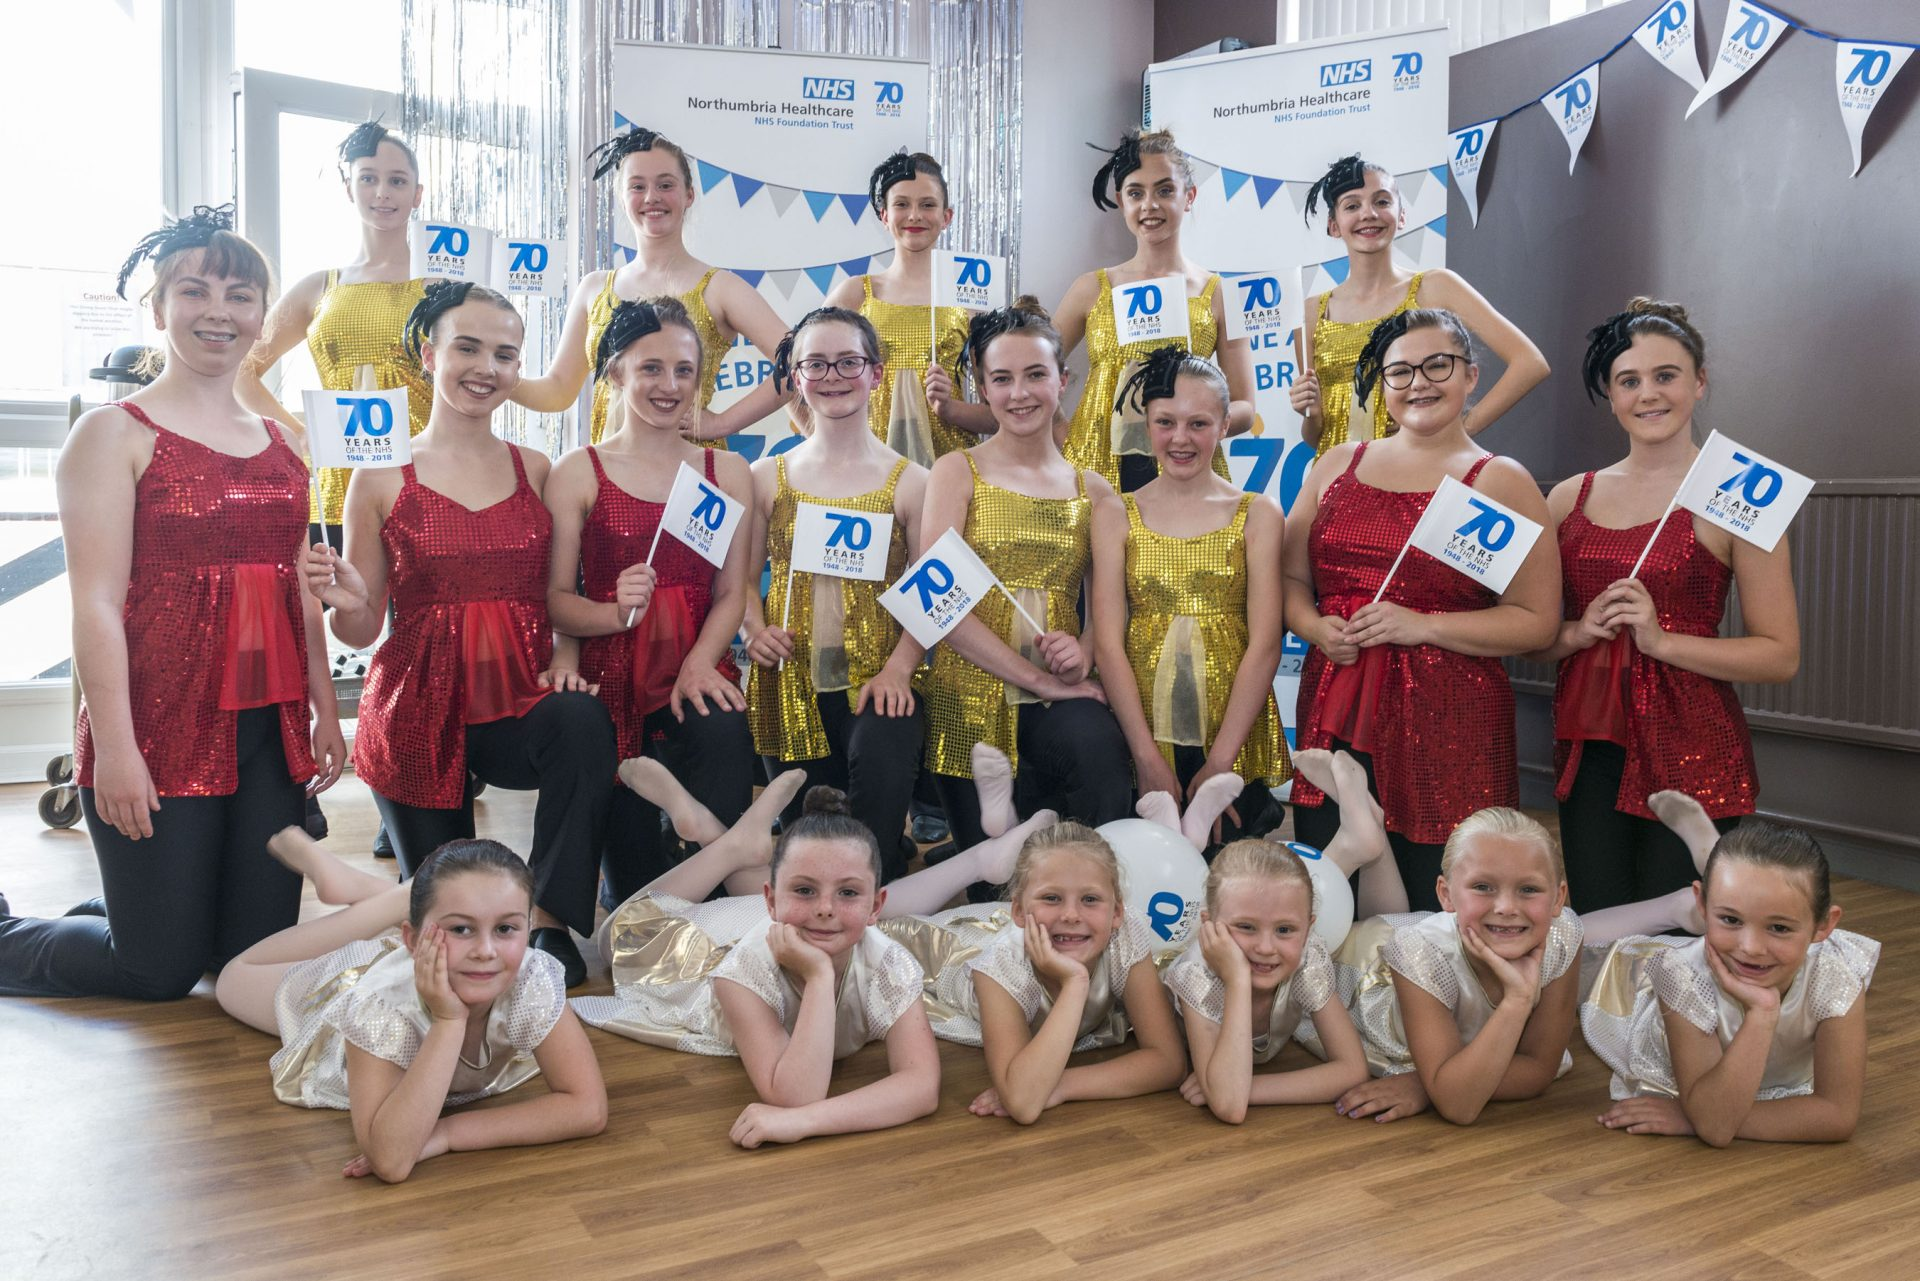 The Alnwick Dance Academy perform at the tea dance at Alnwick Infirmary to celebrate the 70th birthday of the NHS, July 2018